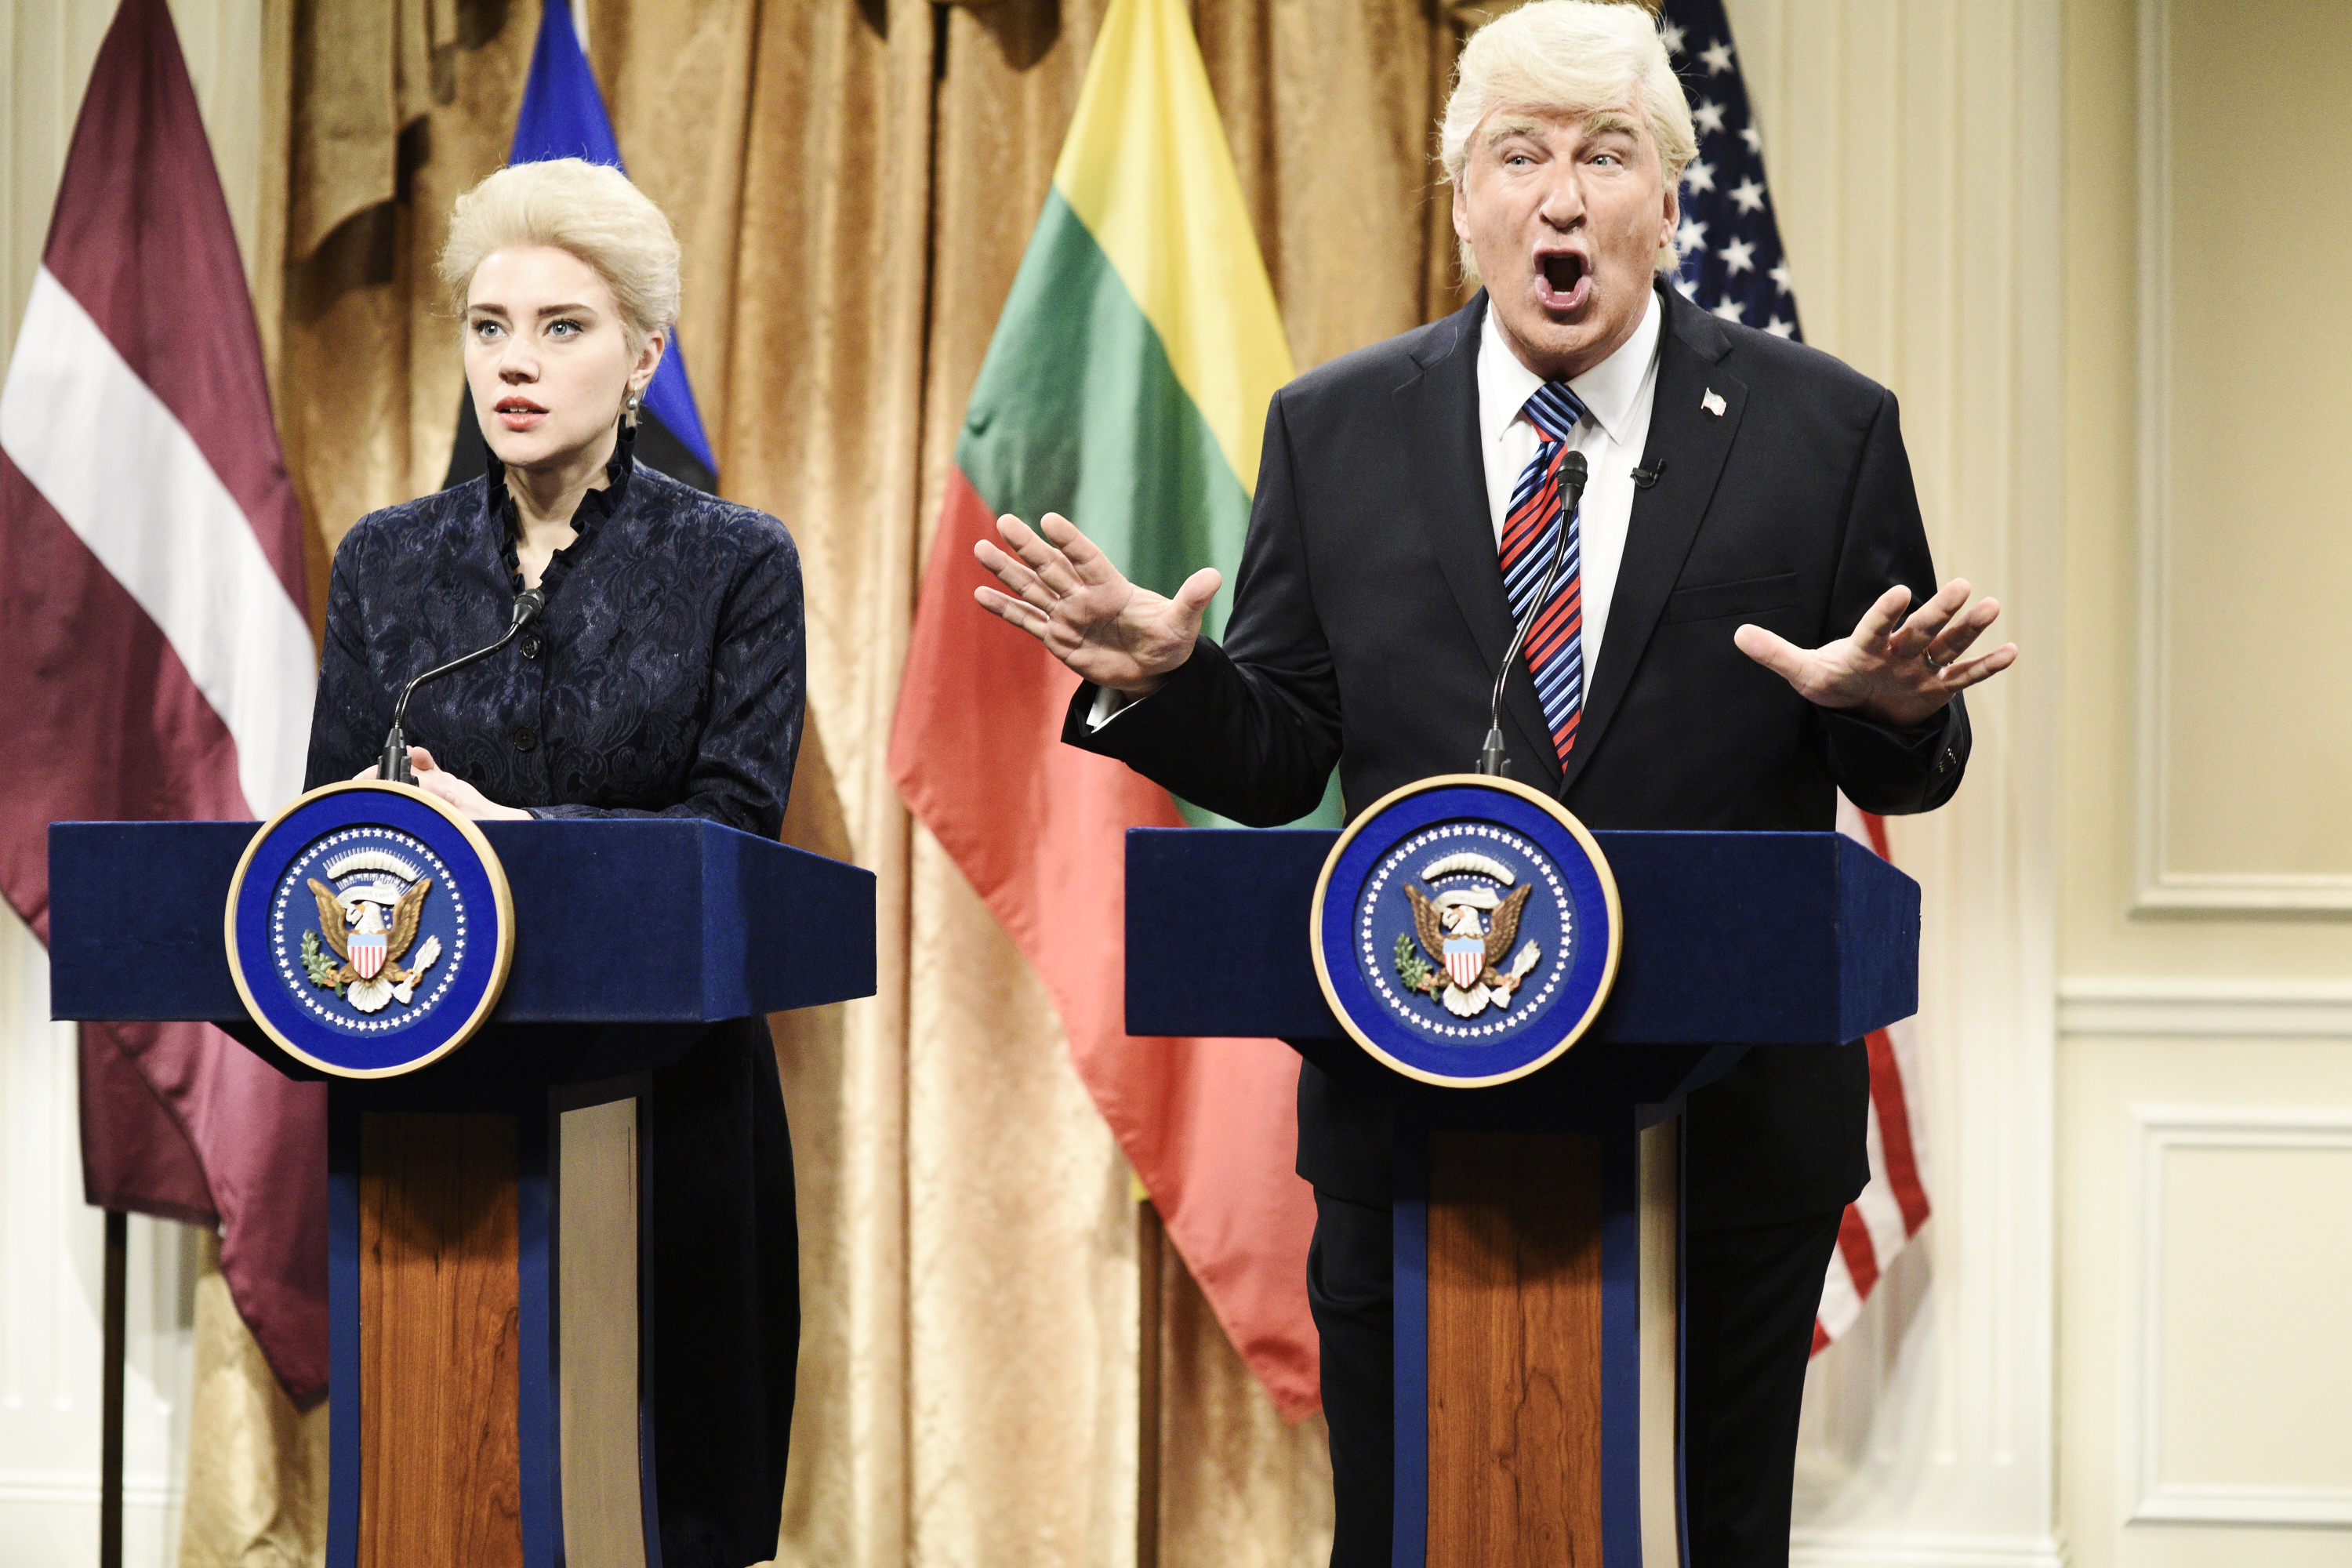 Pictured: (l-r) Kate McKinnon as Dalia Grybauskait, President of Lithuania, Alec Baldwin as President Donald Trump during 'Trump Baltic States Cold Open' in Studio 8H on Saturday, April 7, 2018.